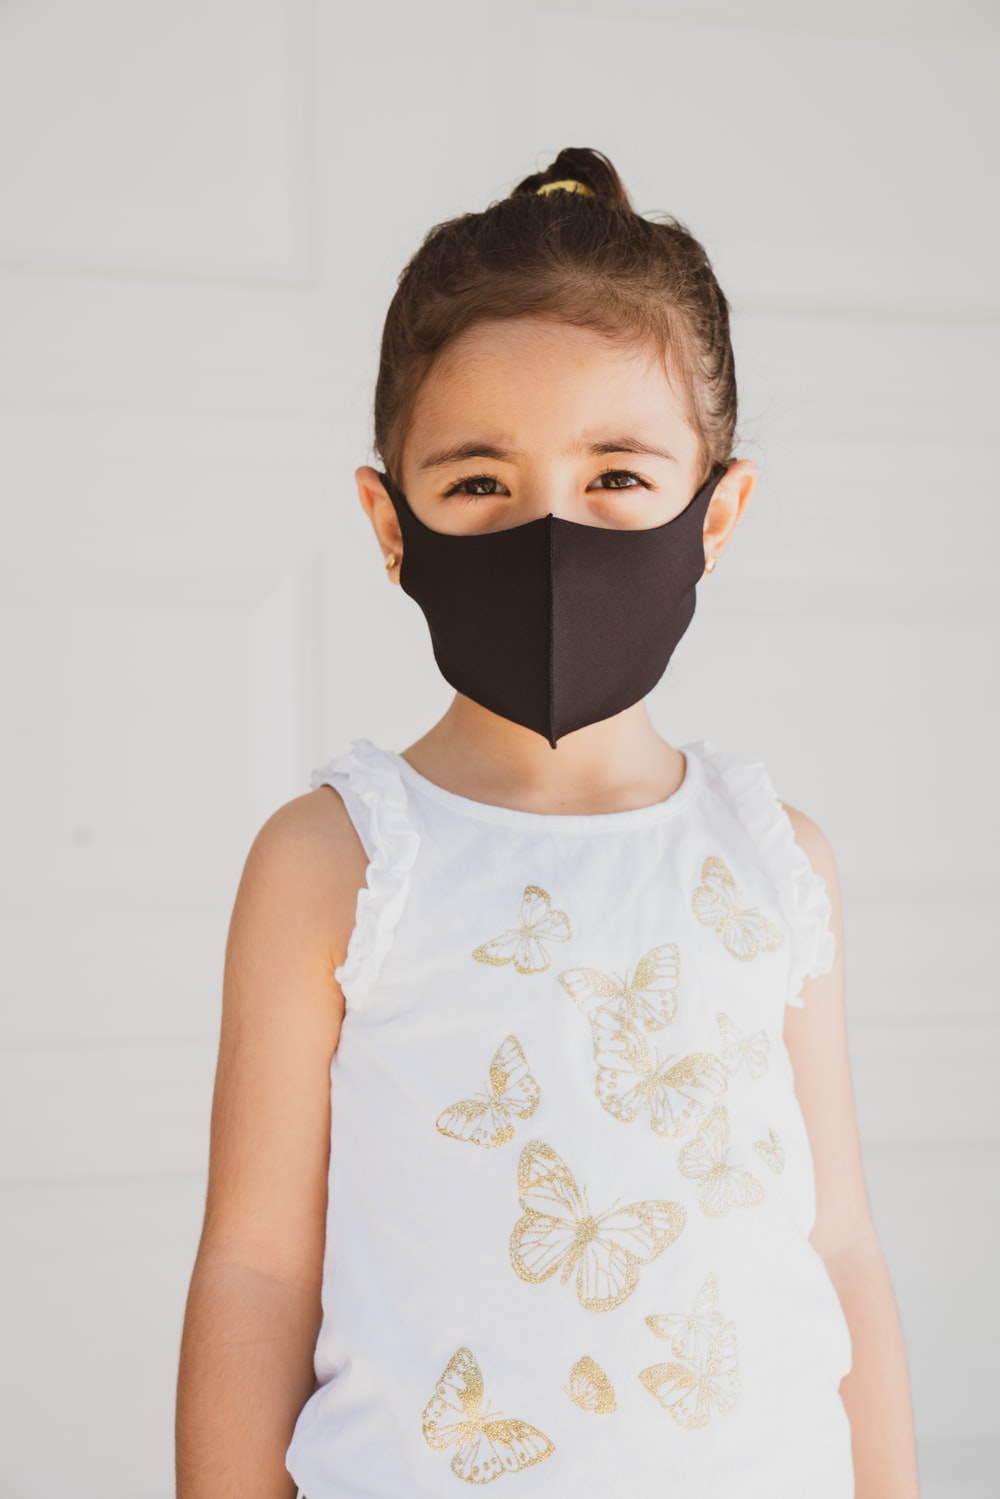 girl in white floral tank top wearing black face mask